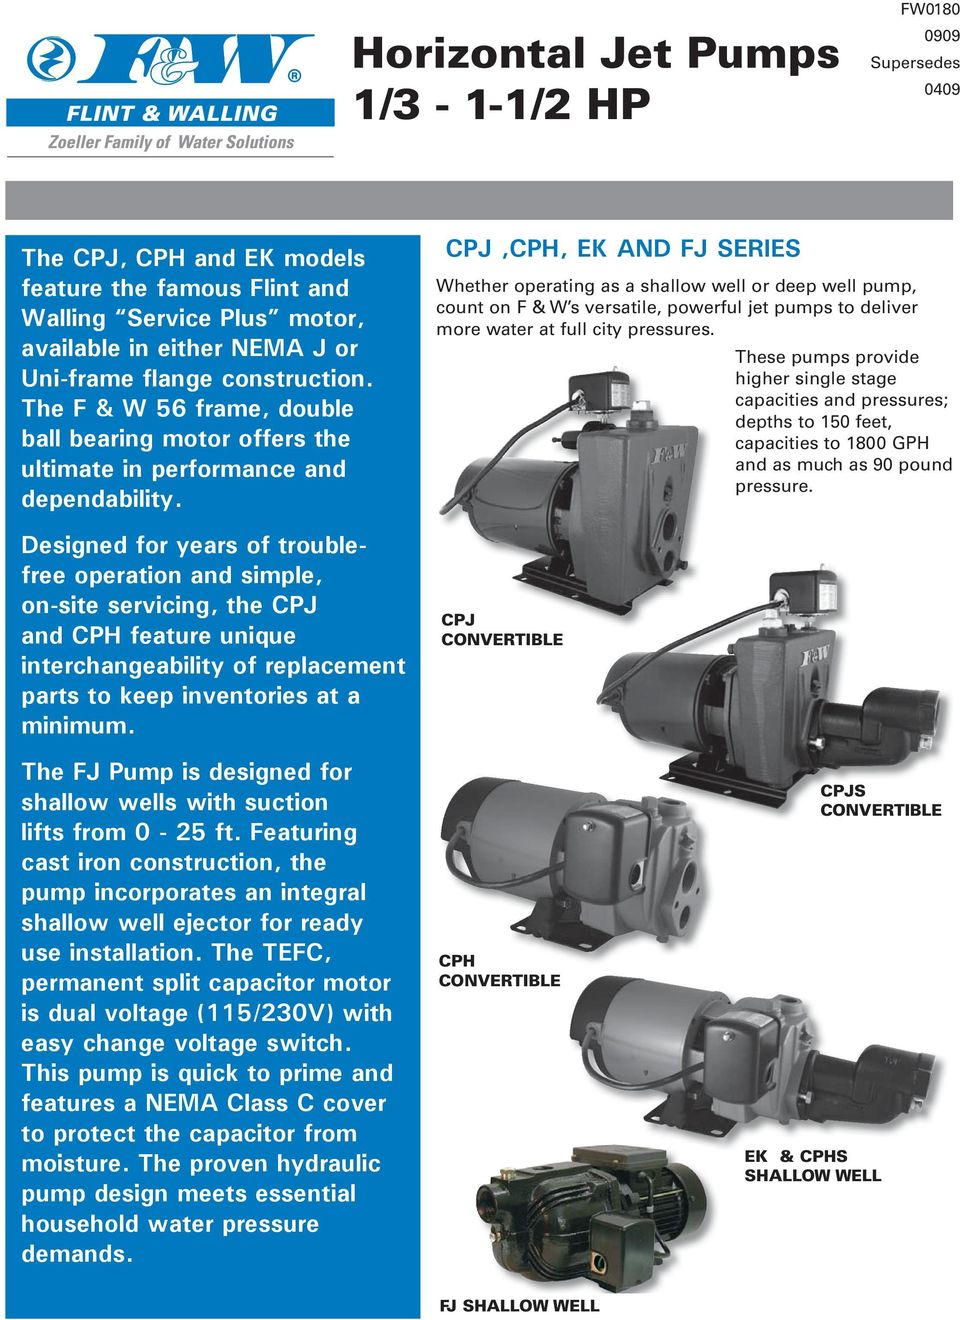 Designed for years of troublefree operation and simple, on-site servicing, the CPJ and CPH feature unique interchangeability of replacement parts to keep inventories at a minimum.